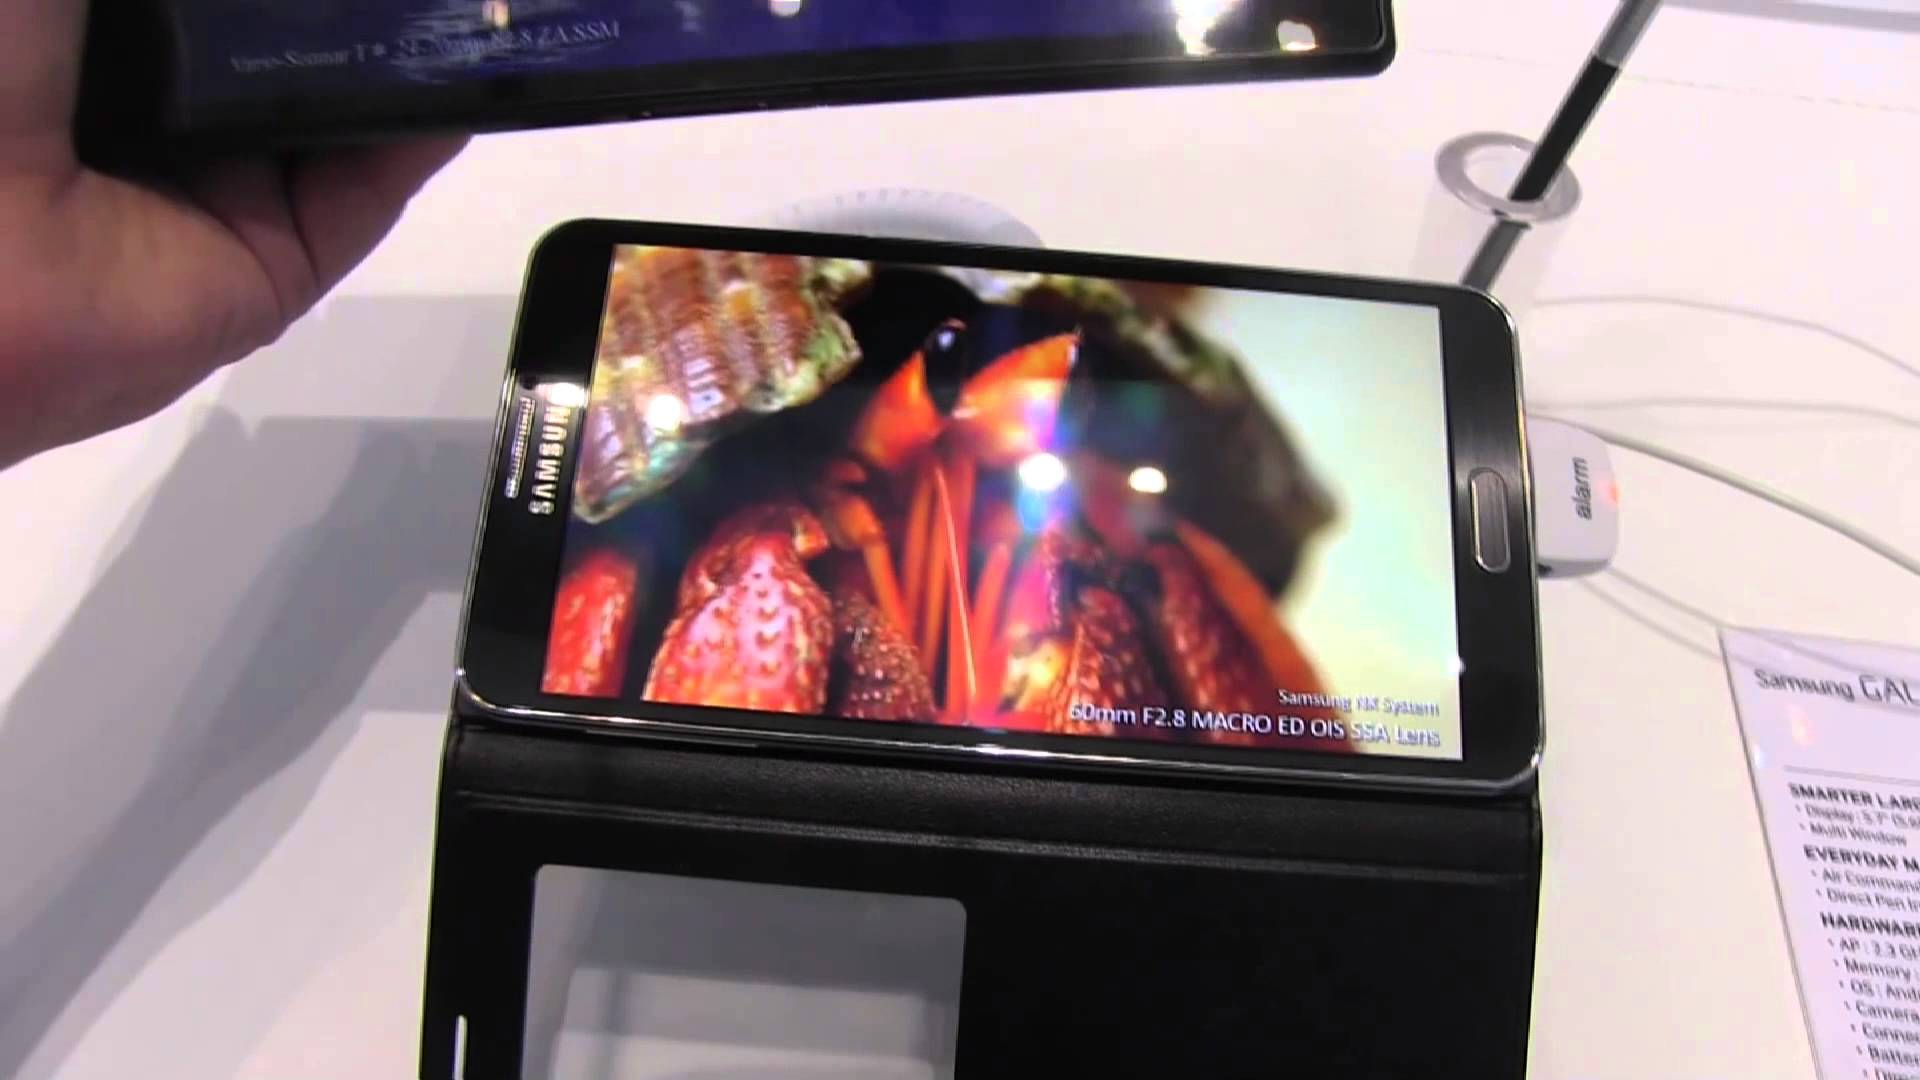 IFA: Samsung Galaxy Note 3 vs. Sony Xperia Z Ultra